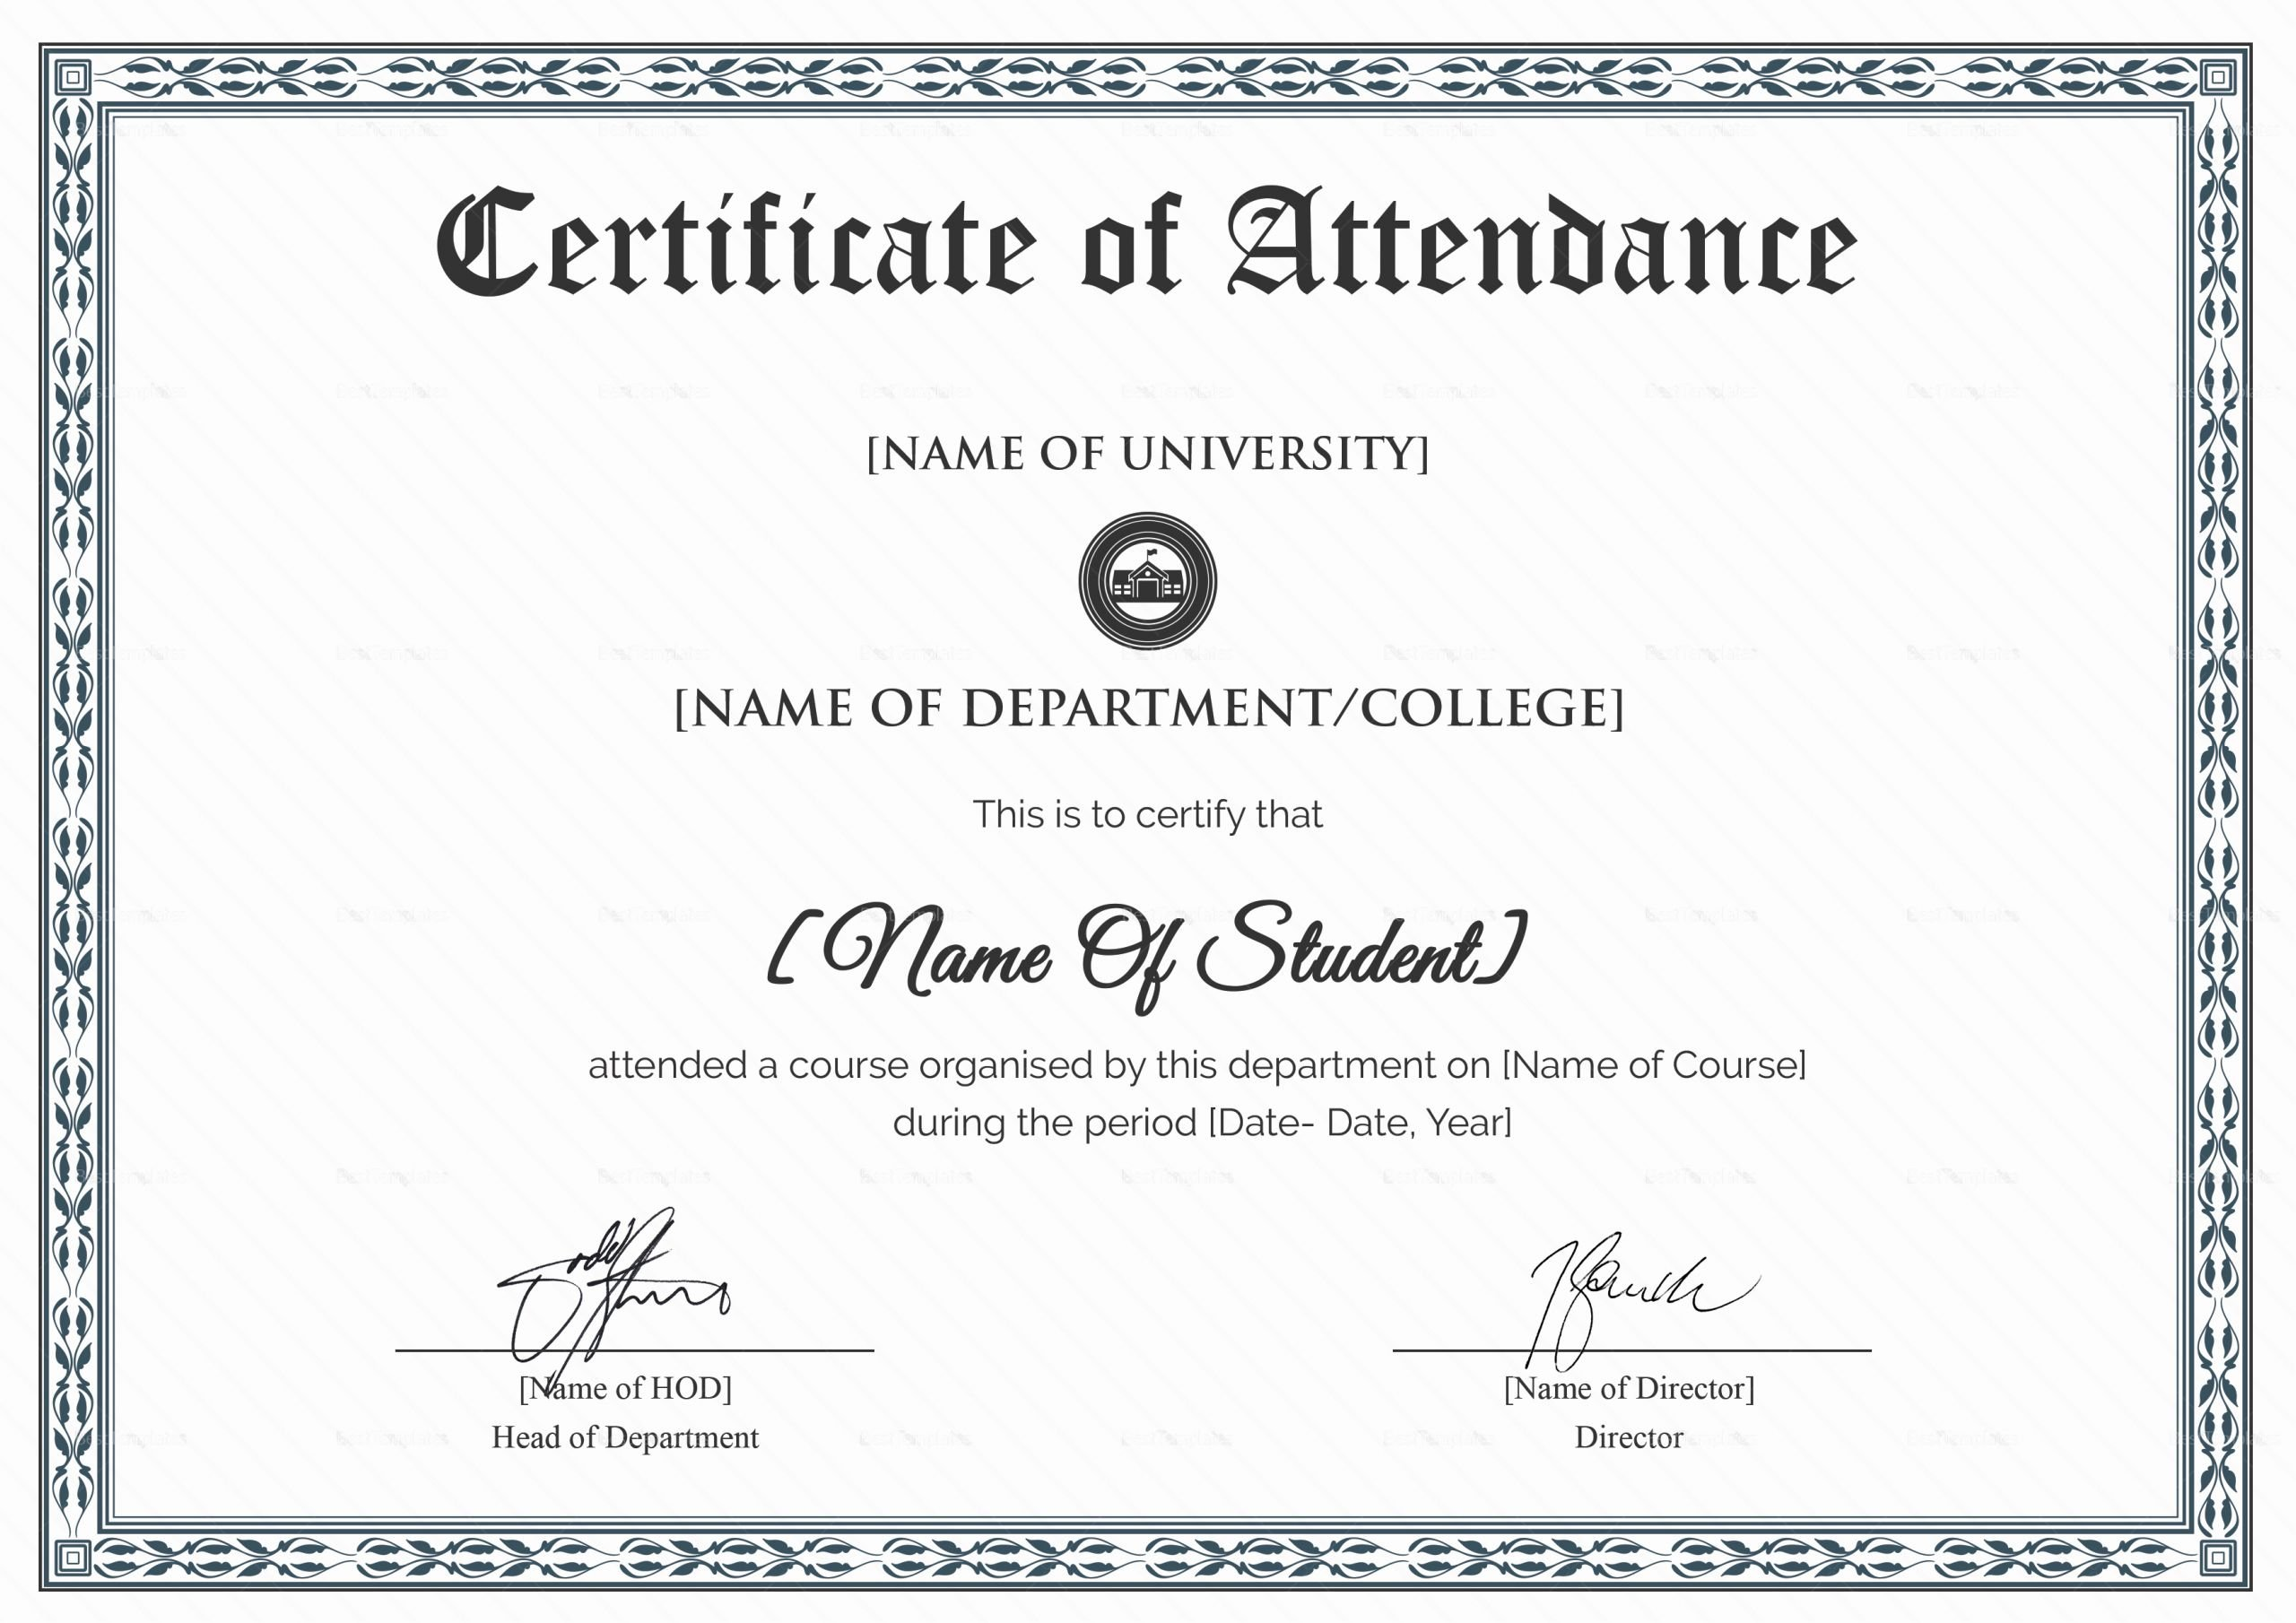 Attendance Certificate Template Word Awesome College Students attendance Certificate Design Template In